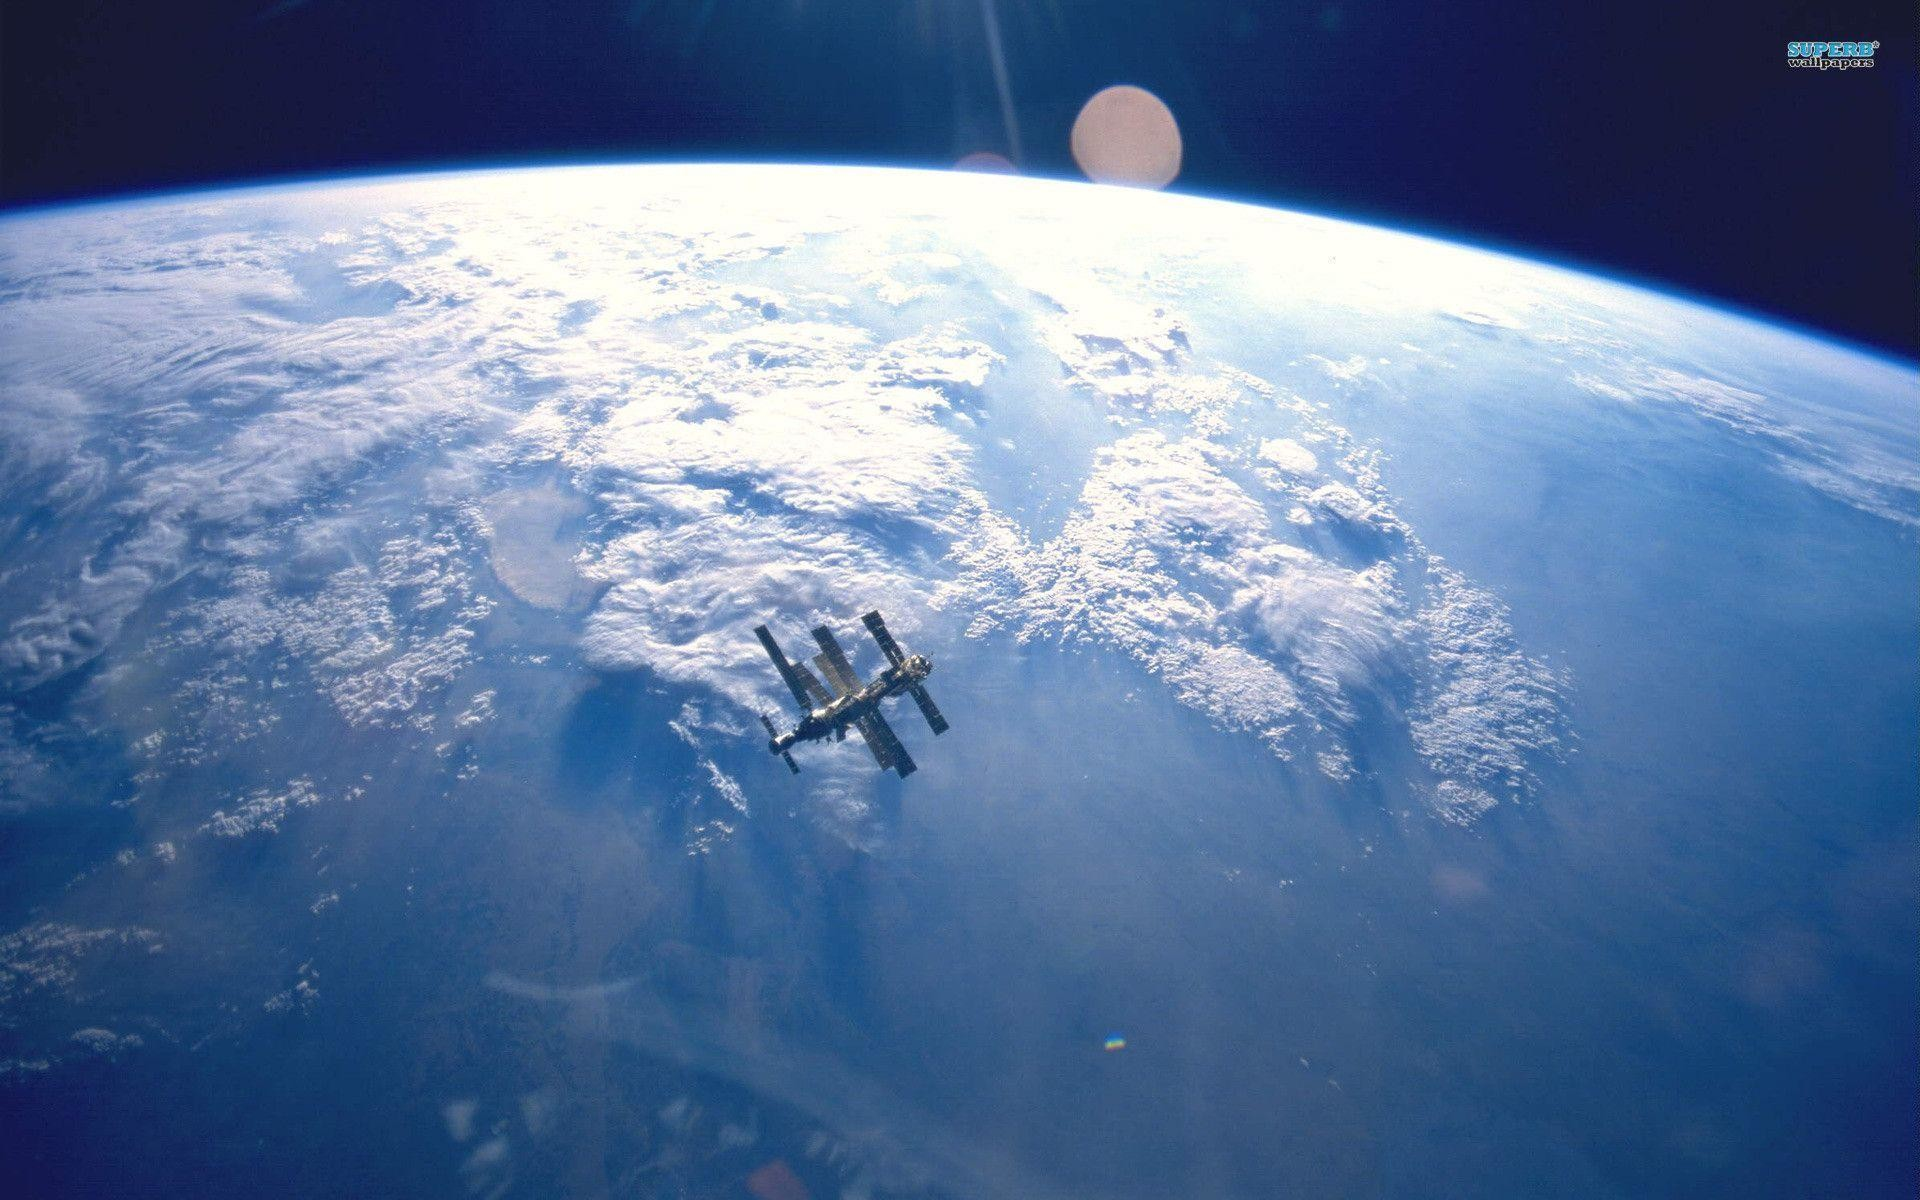 1920x1200 International Space Station wallpaper - Space wallpapers - #10554